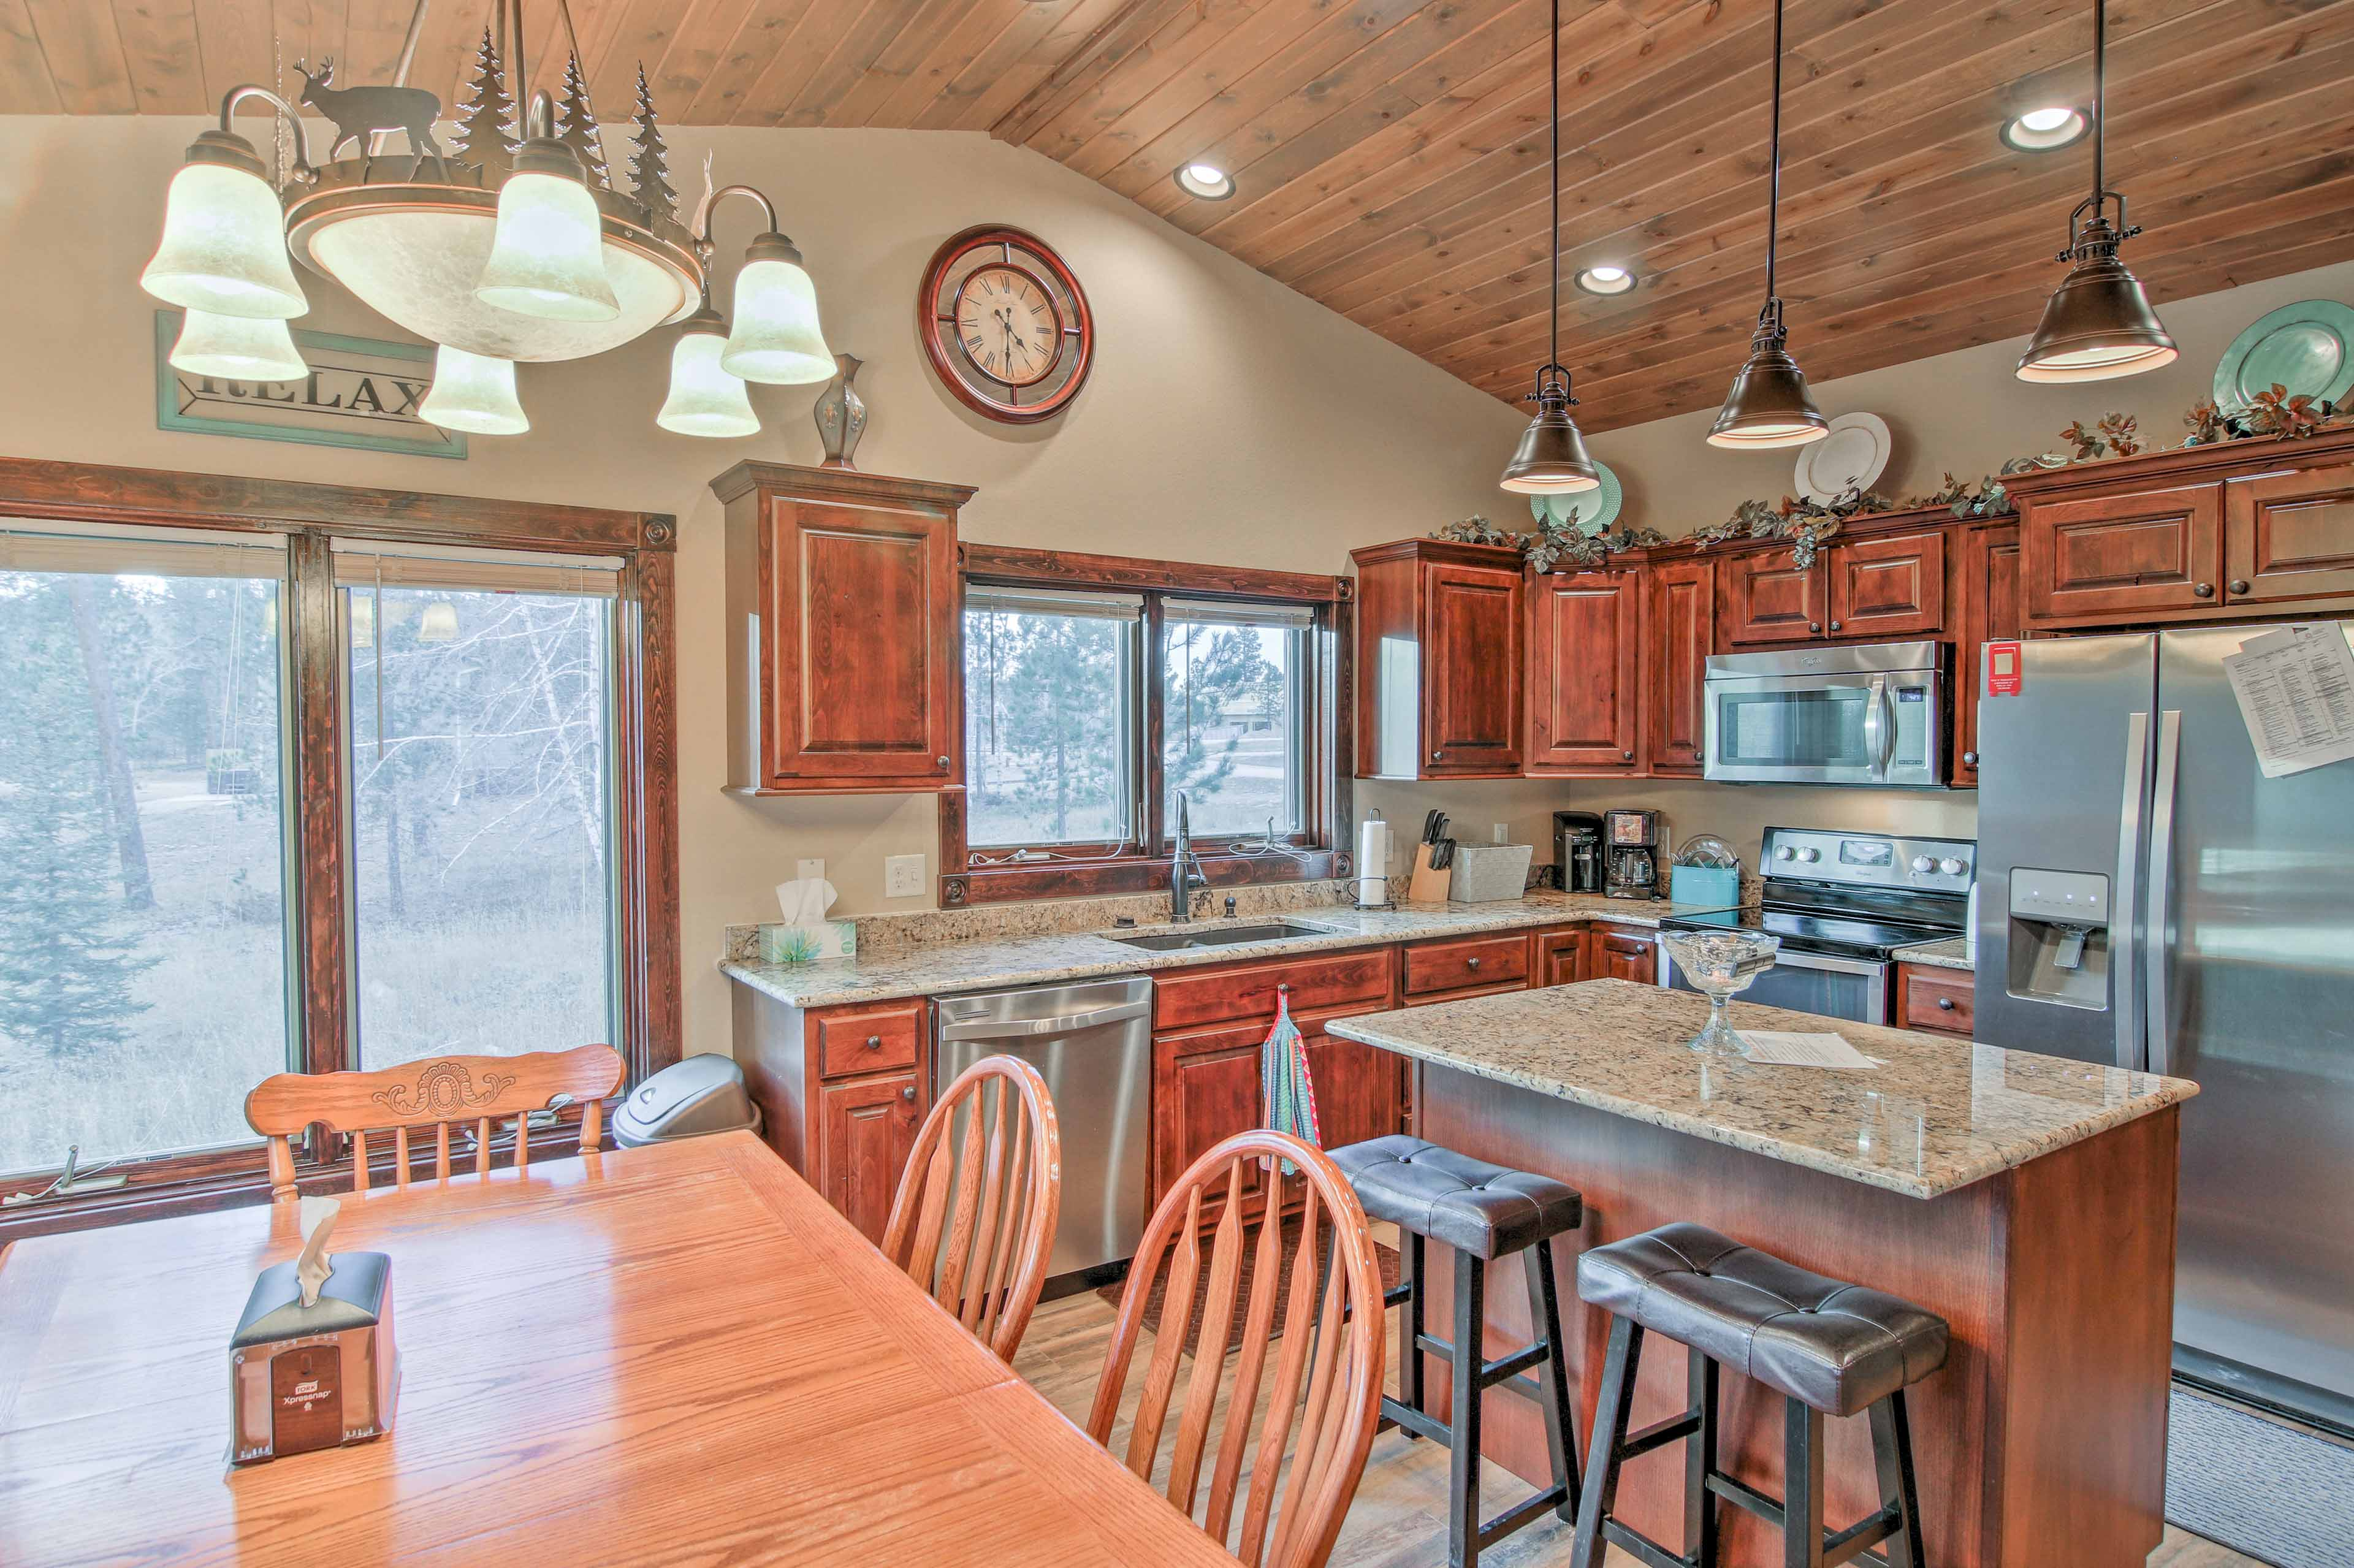 The kitchen is fully equipped with stainless steel appliances & granite!